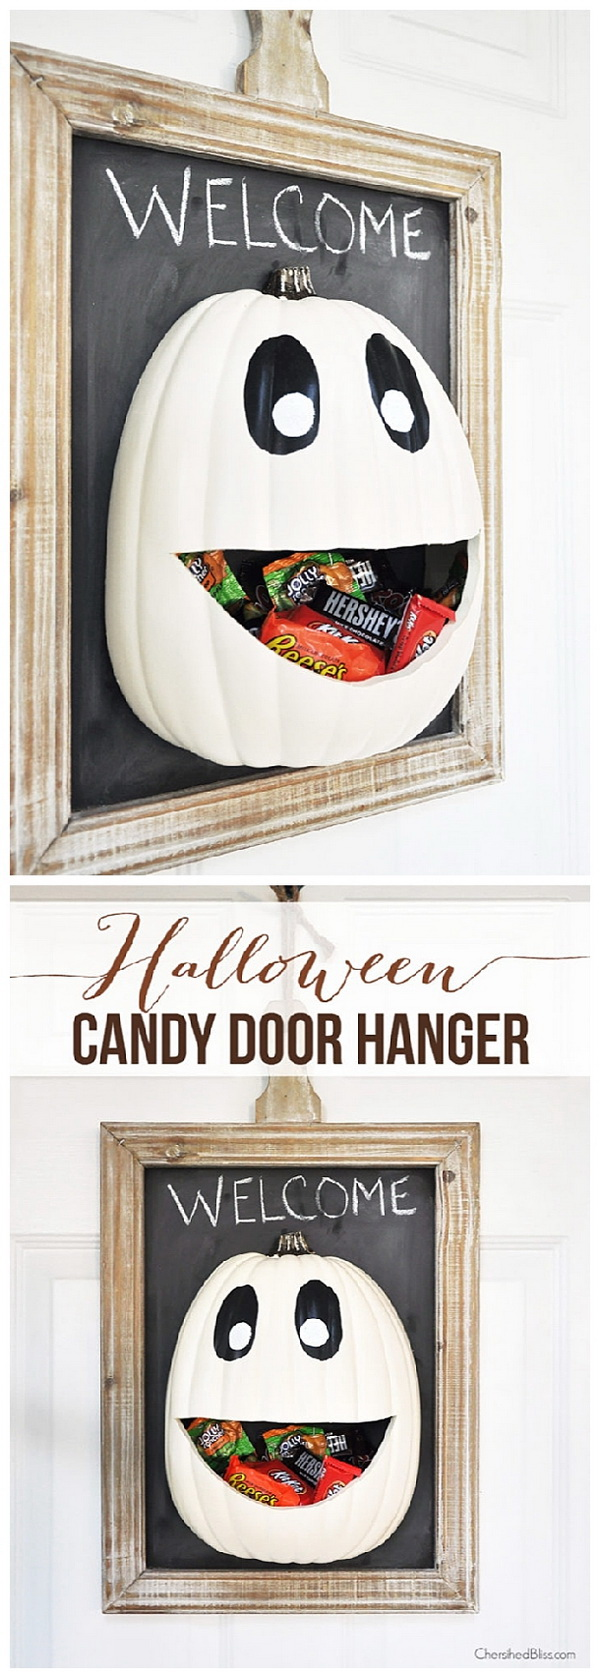 DIY Halloween Candy Door Hanger.